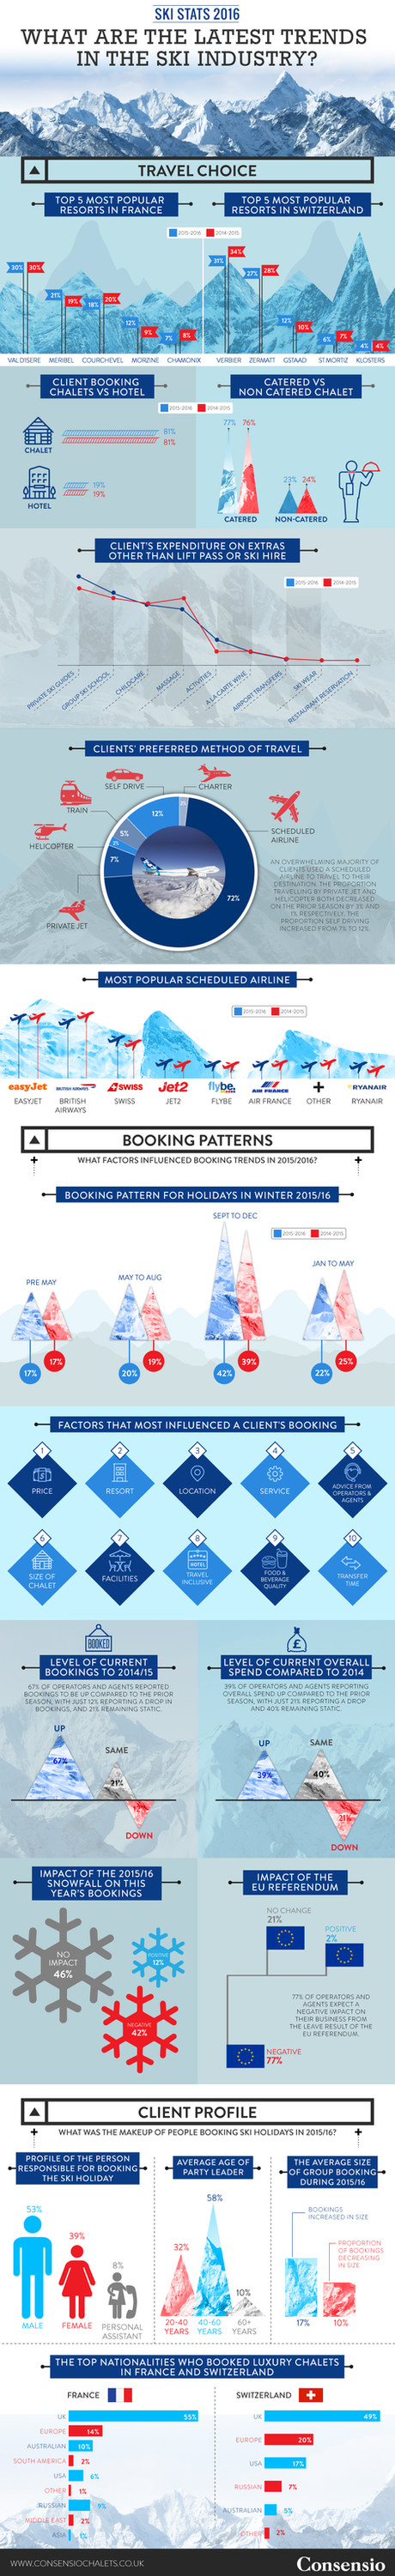 Ski Stats 2016 What Are the Latest Trends in the Ski Industry